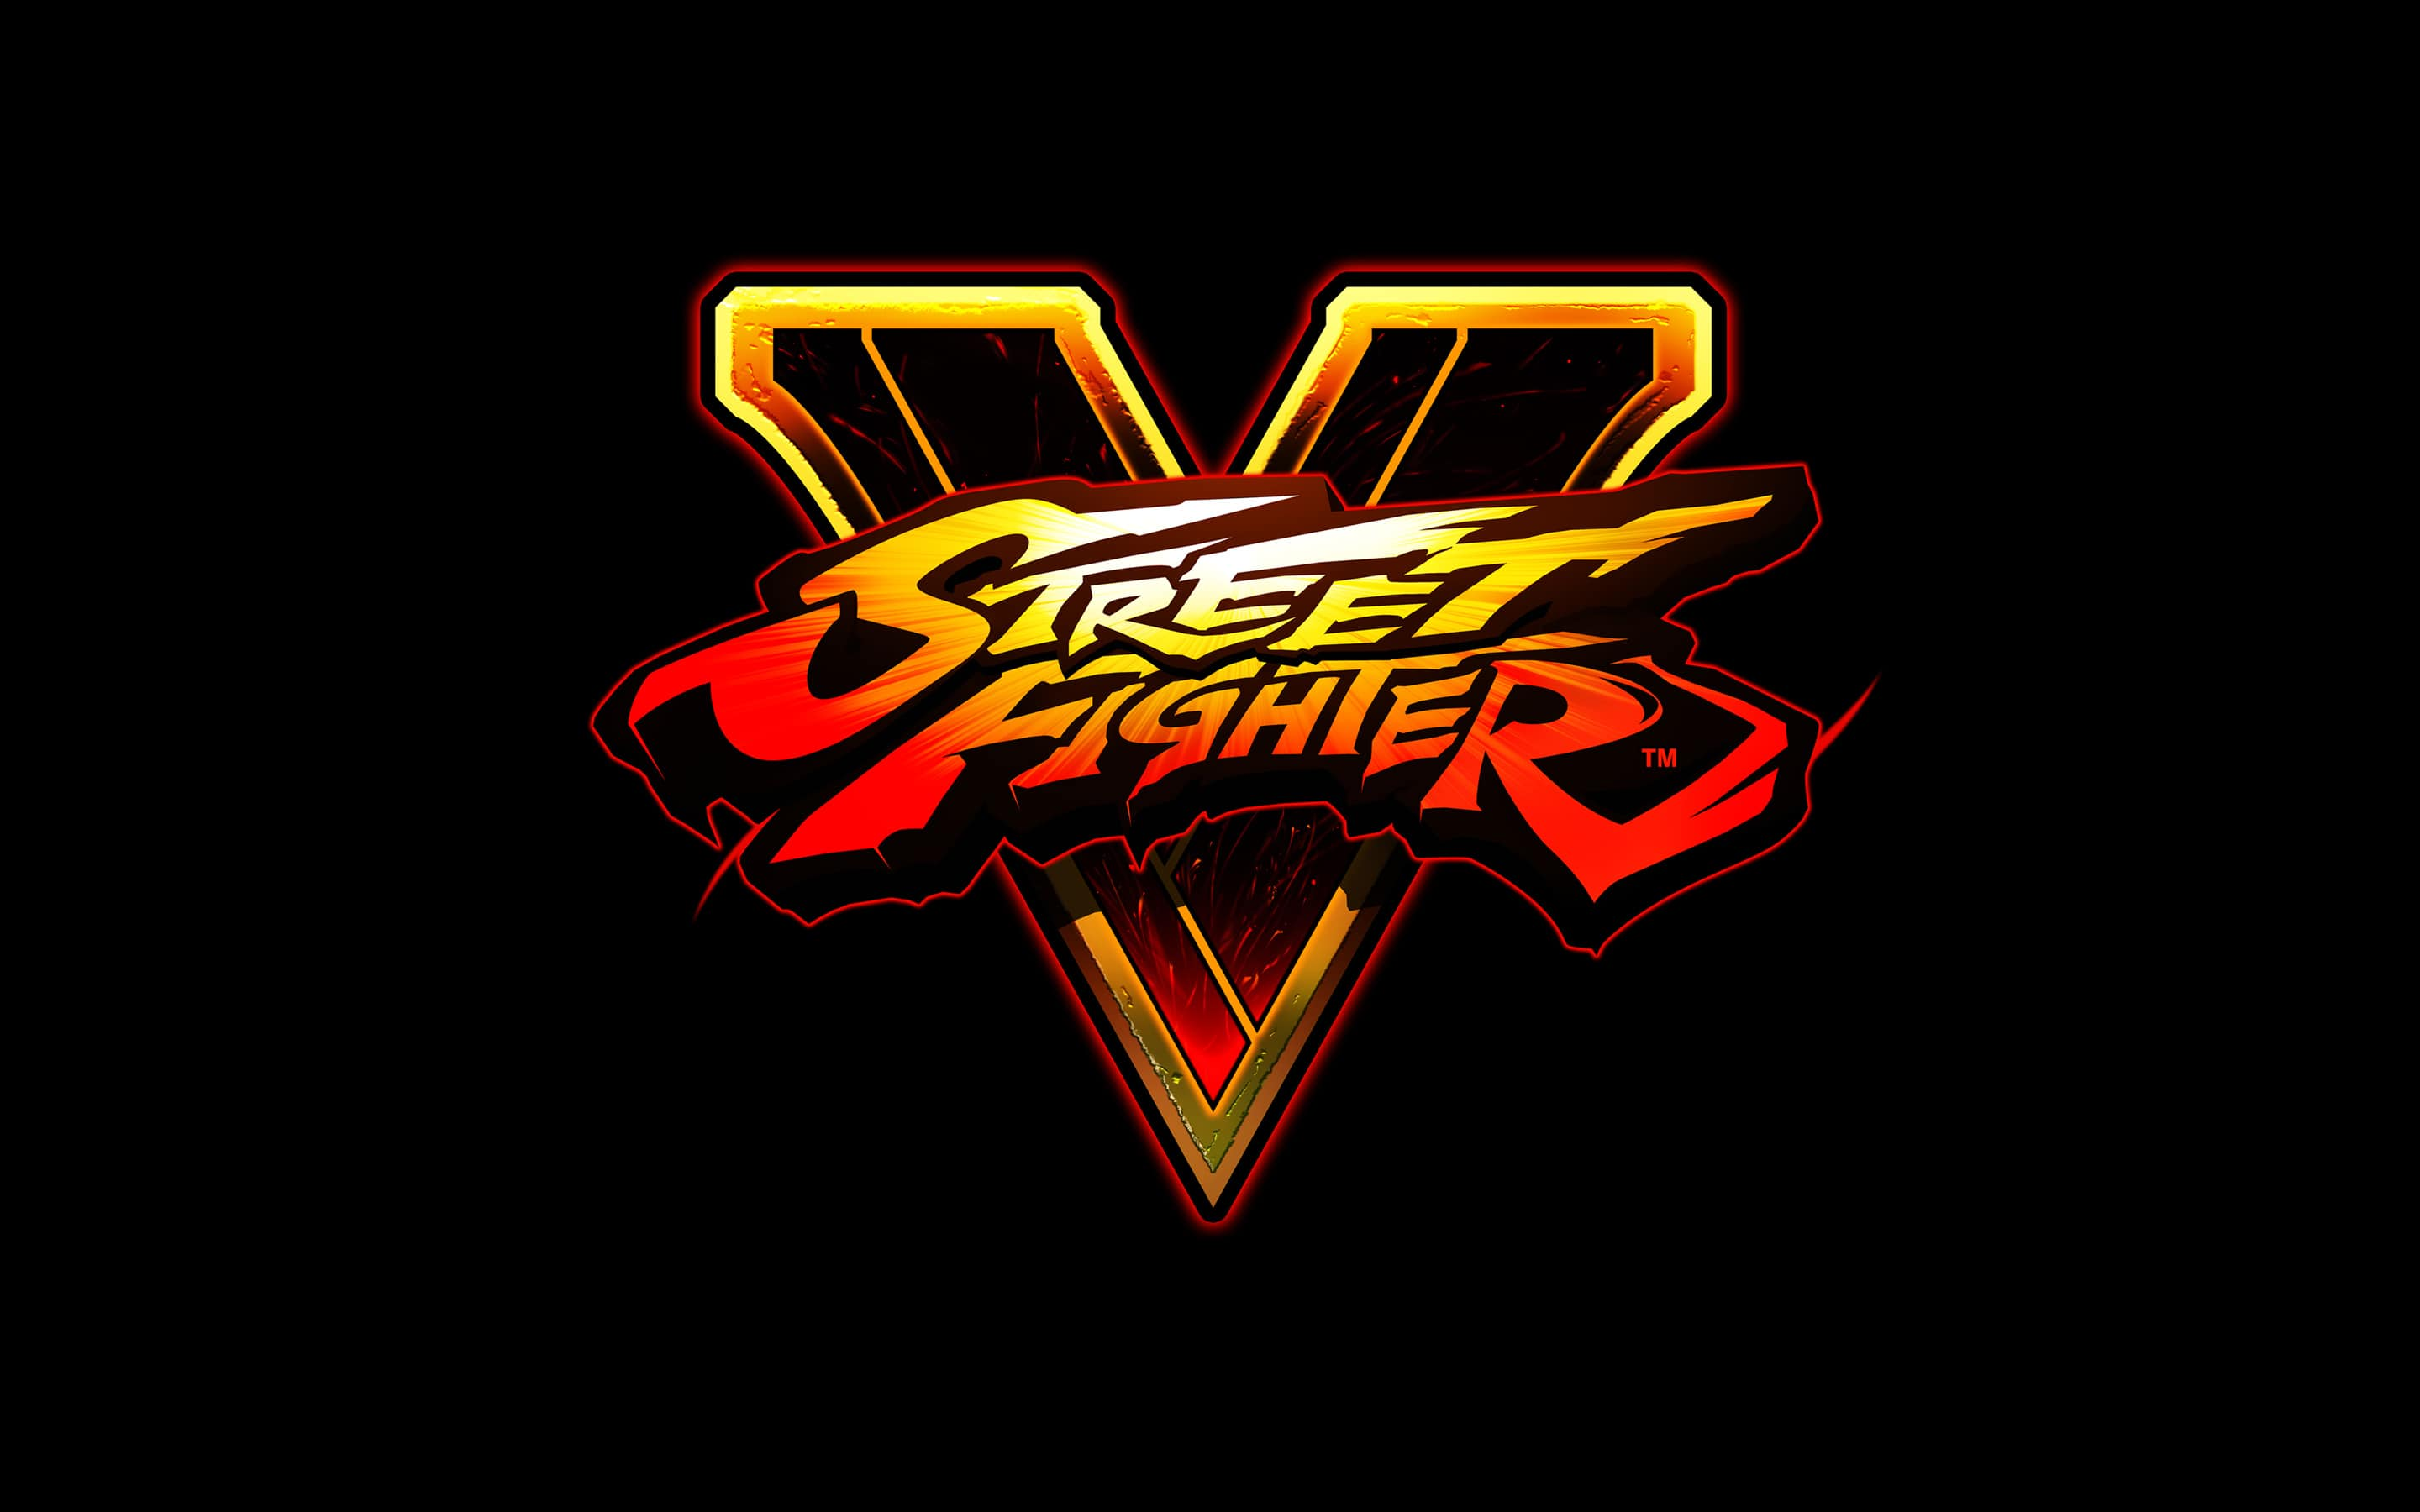 Street Fighter 5 Free